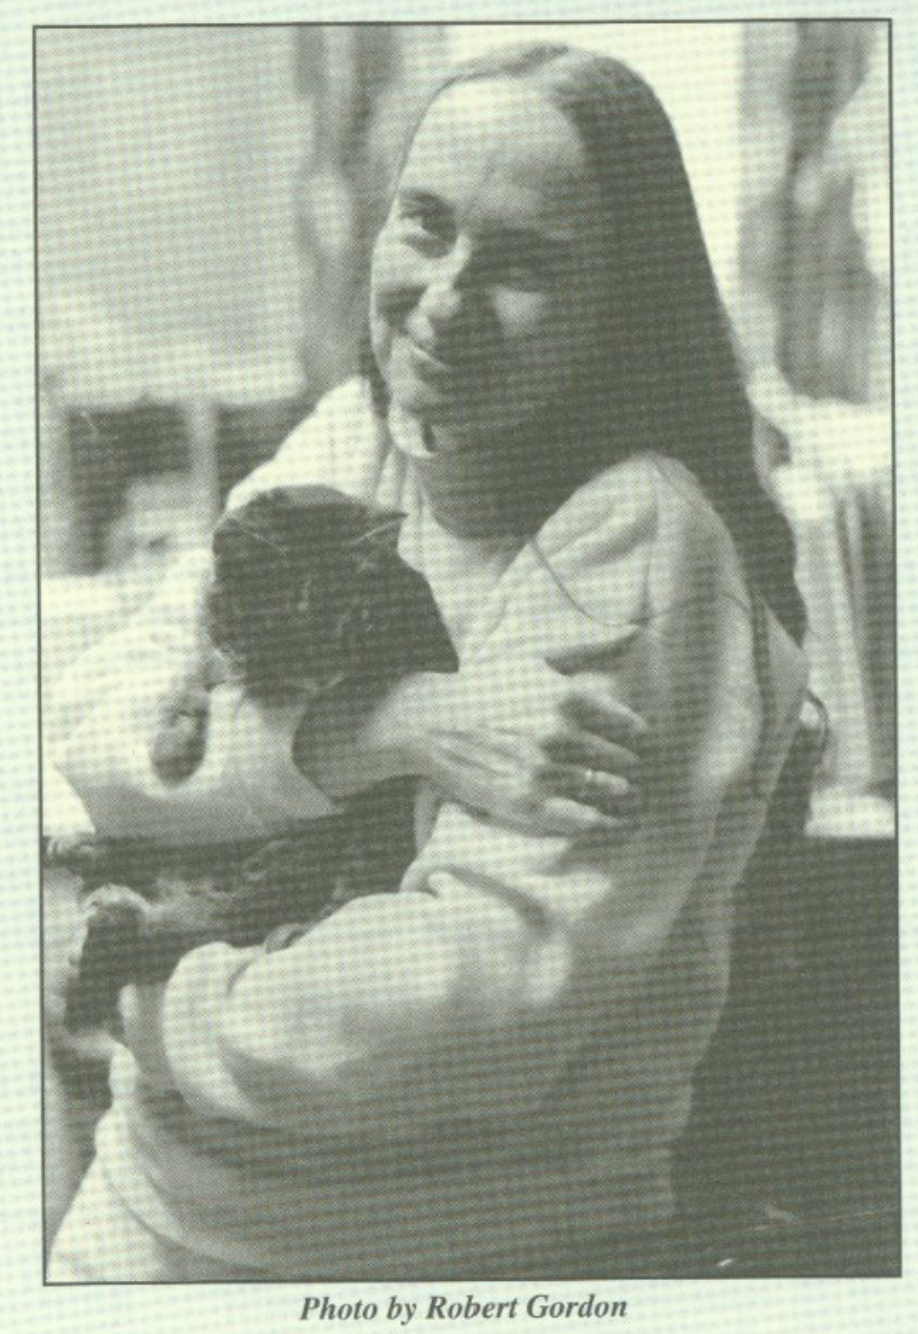 Sr. Eileen K. Rice and a Cat. Coincidence? Hardly.